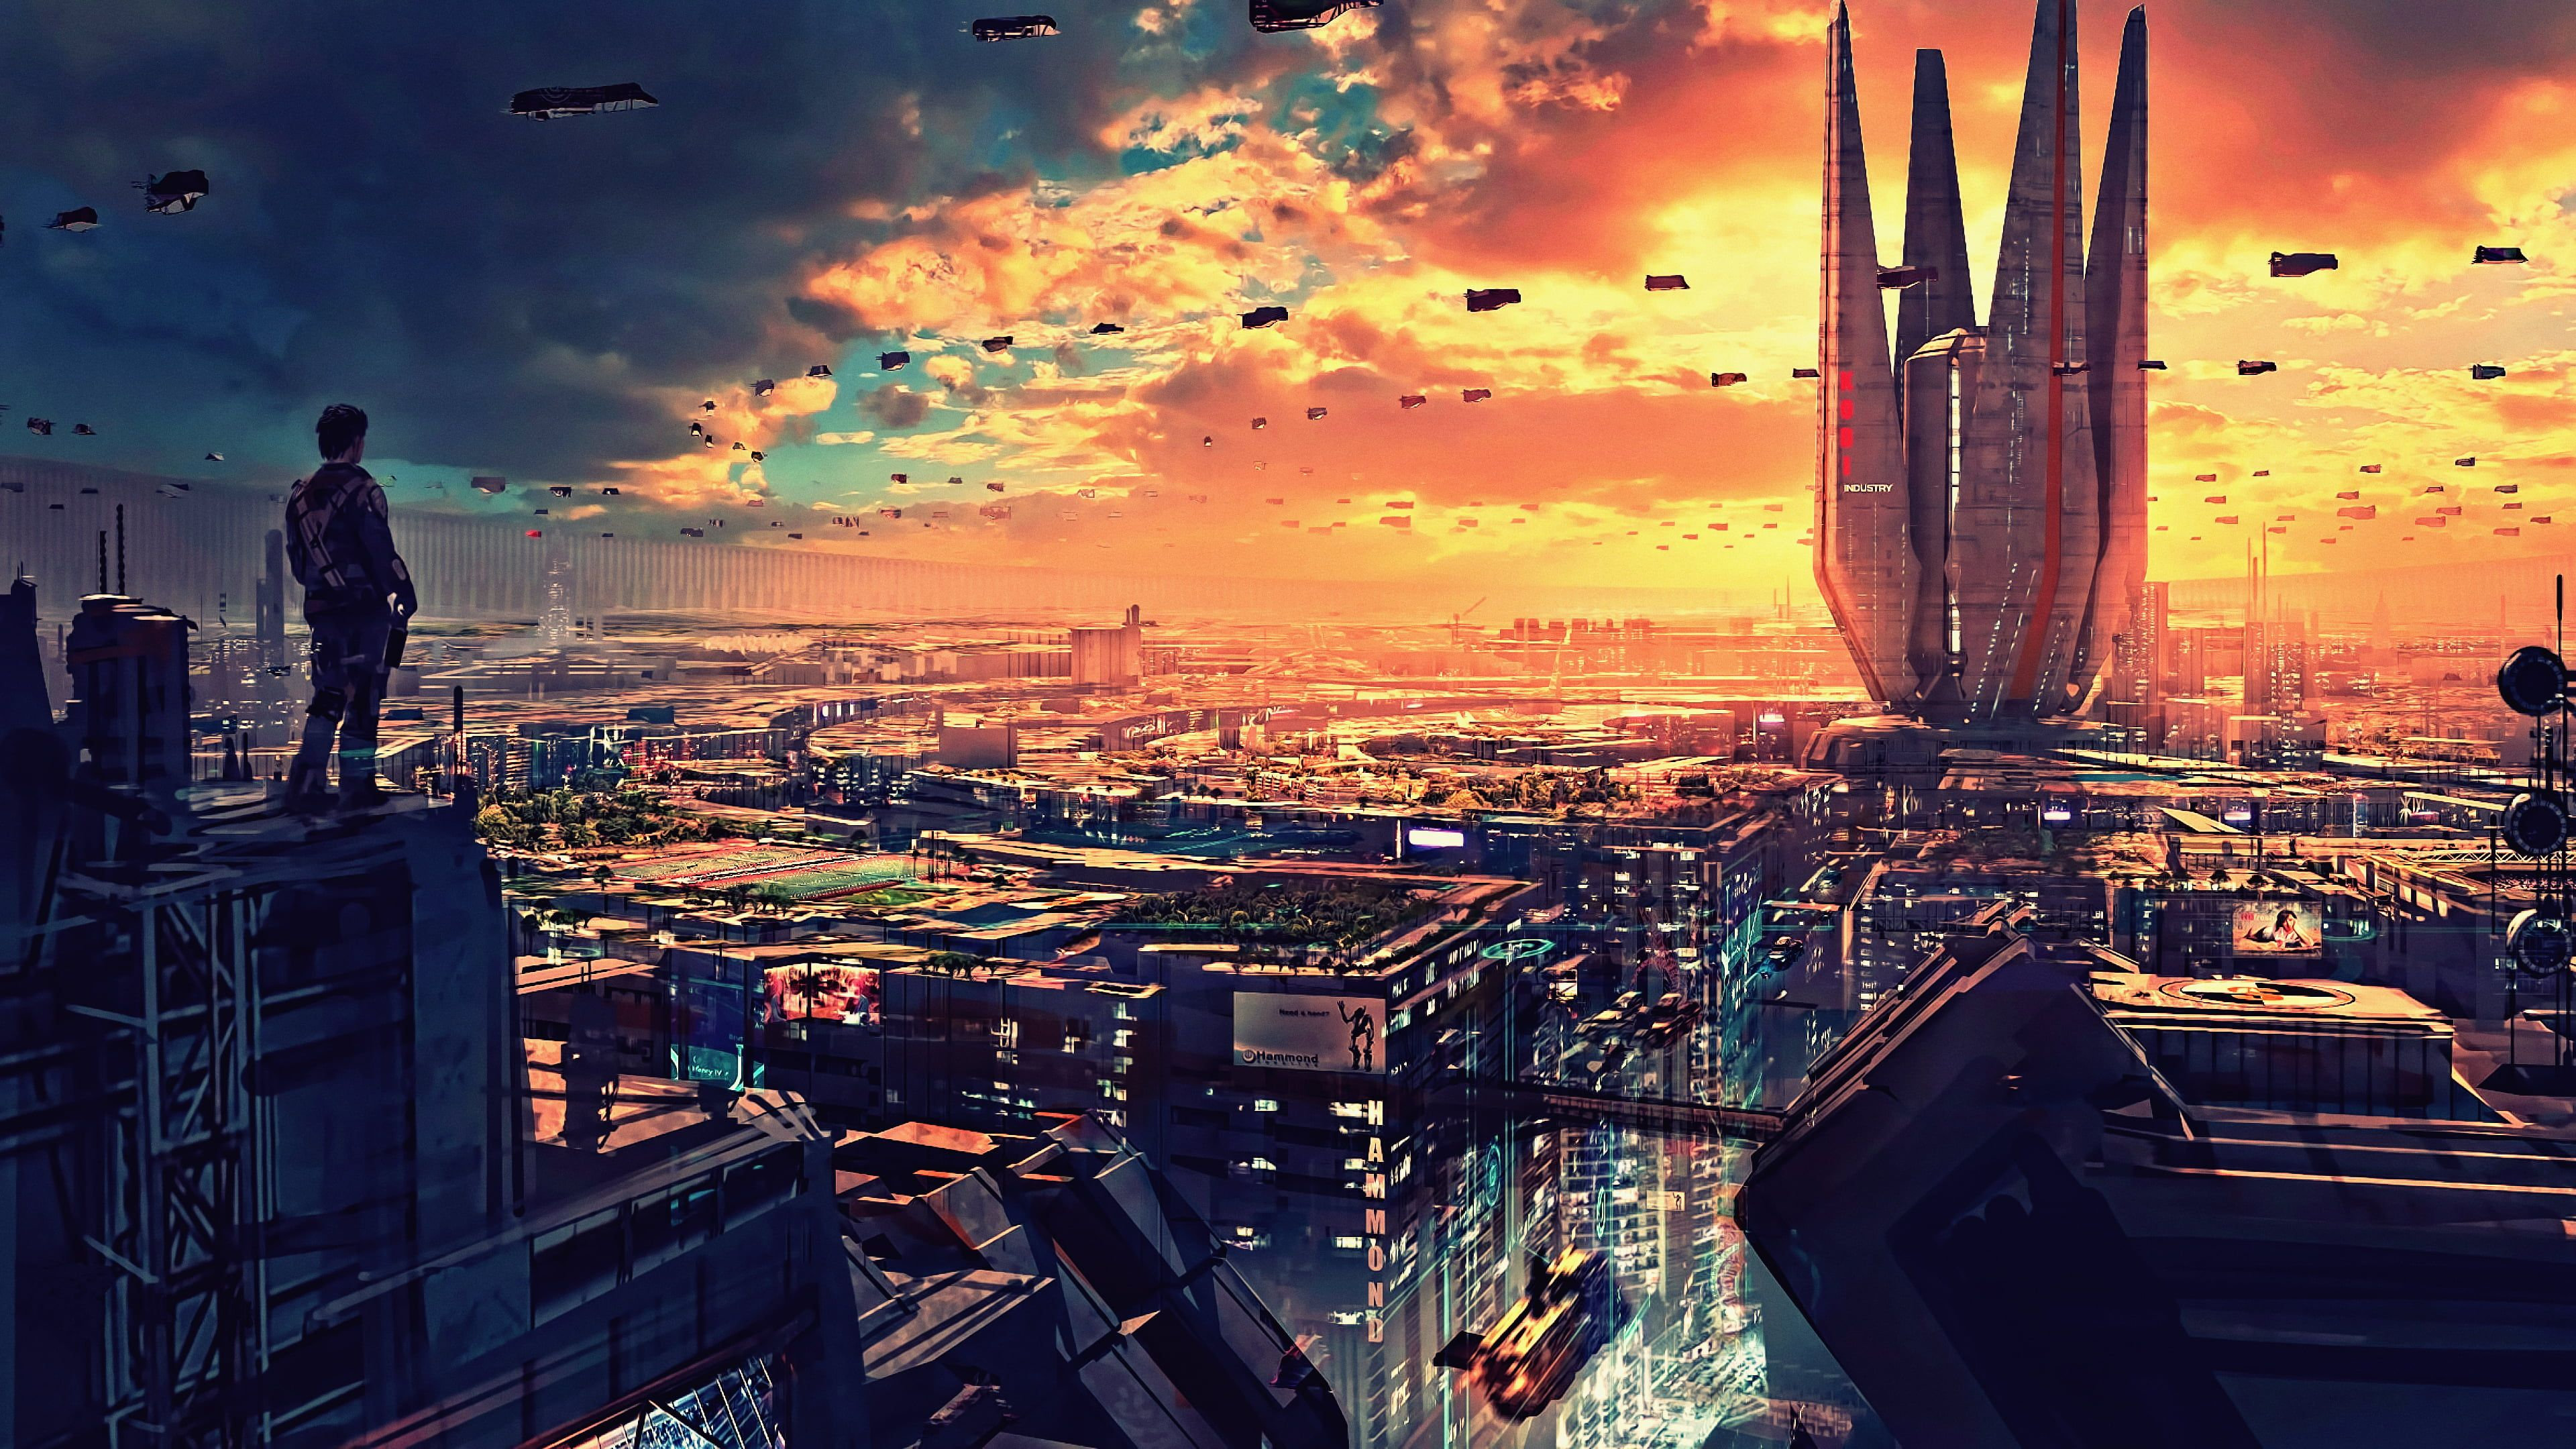 Person Standing On Top Of Building Wallpaper Artwork Futuristic City Science Fiction Digital Art Concept Art Futuristic City Cityscape Wallpaper Sci Fi City